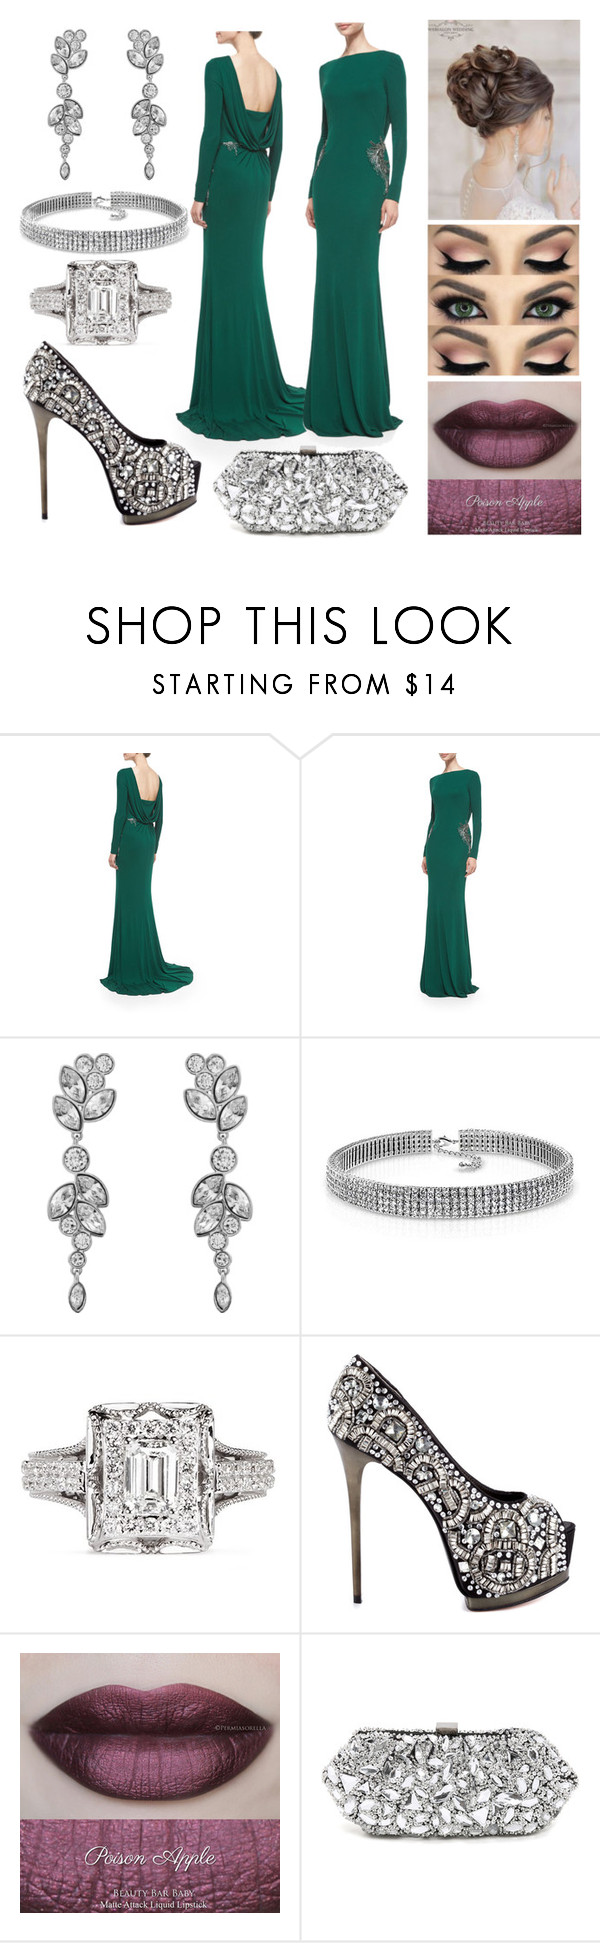 """Untitled #1202"" by the-wanted-potato ❤ liked on Polyvore featuring Badgley Mischka, Swarovski, Bling Jewelry, Vera Wang, ZiGi Black Label, She's So, Santi, women's clothing, women and female"